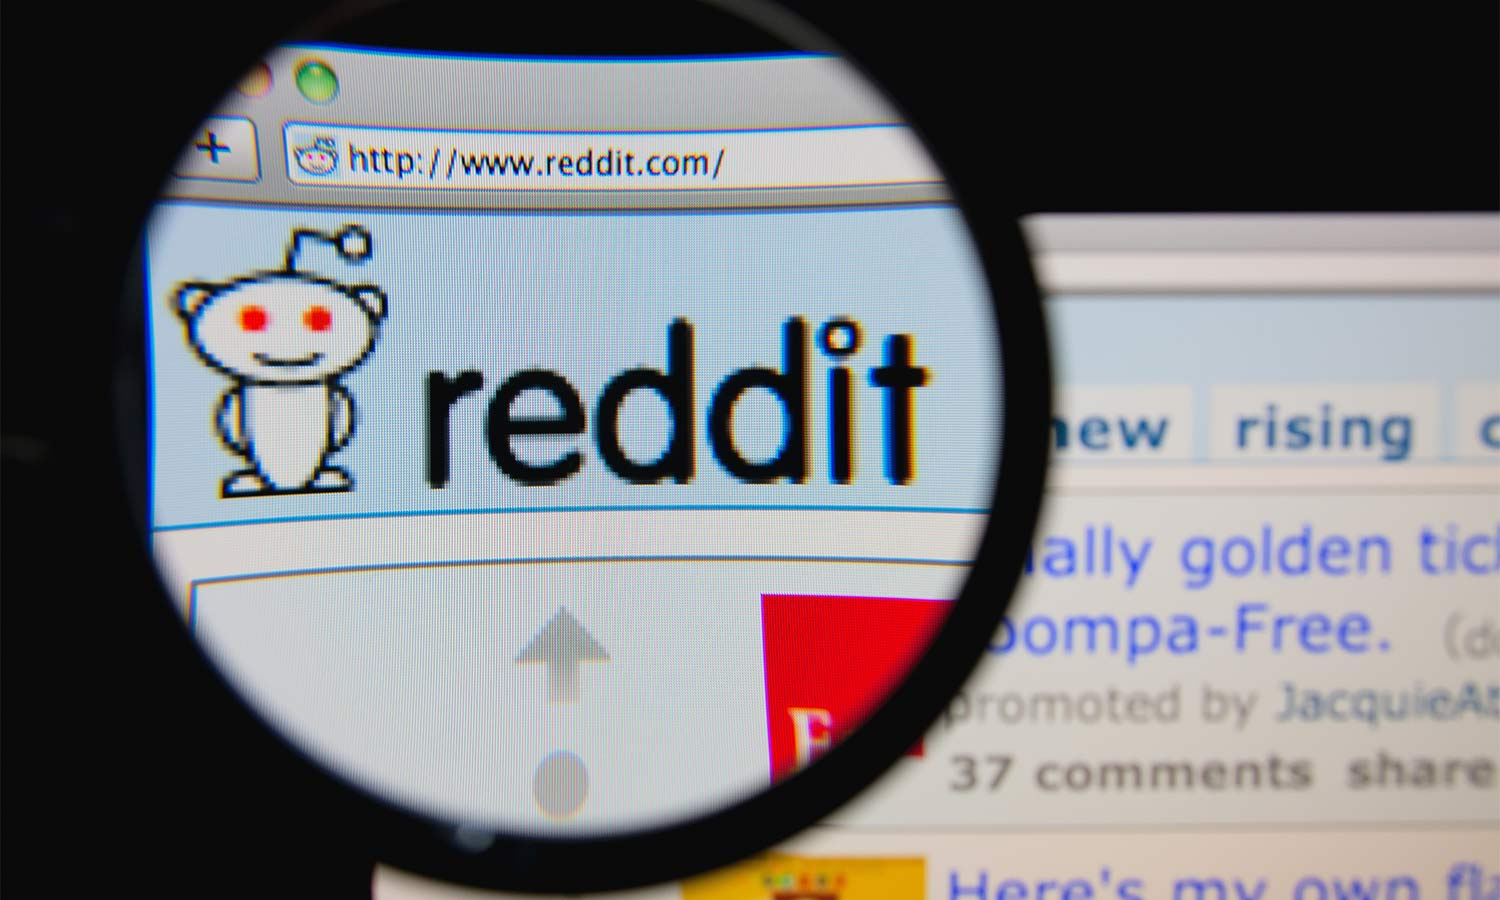 How to Report Bullying and Abuse on Reddit | Tom's Guide